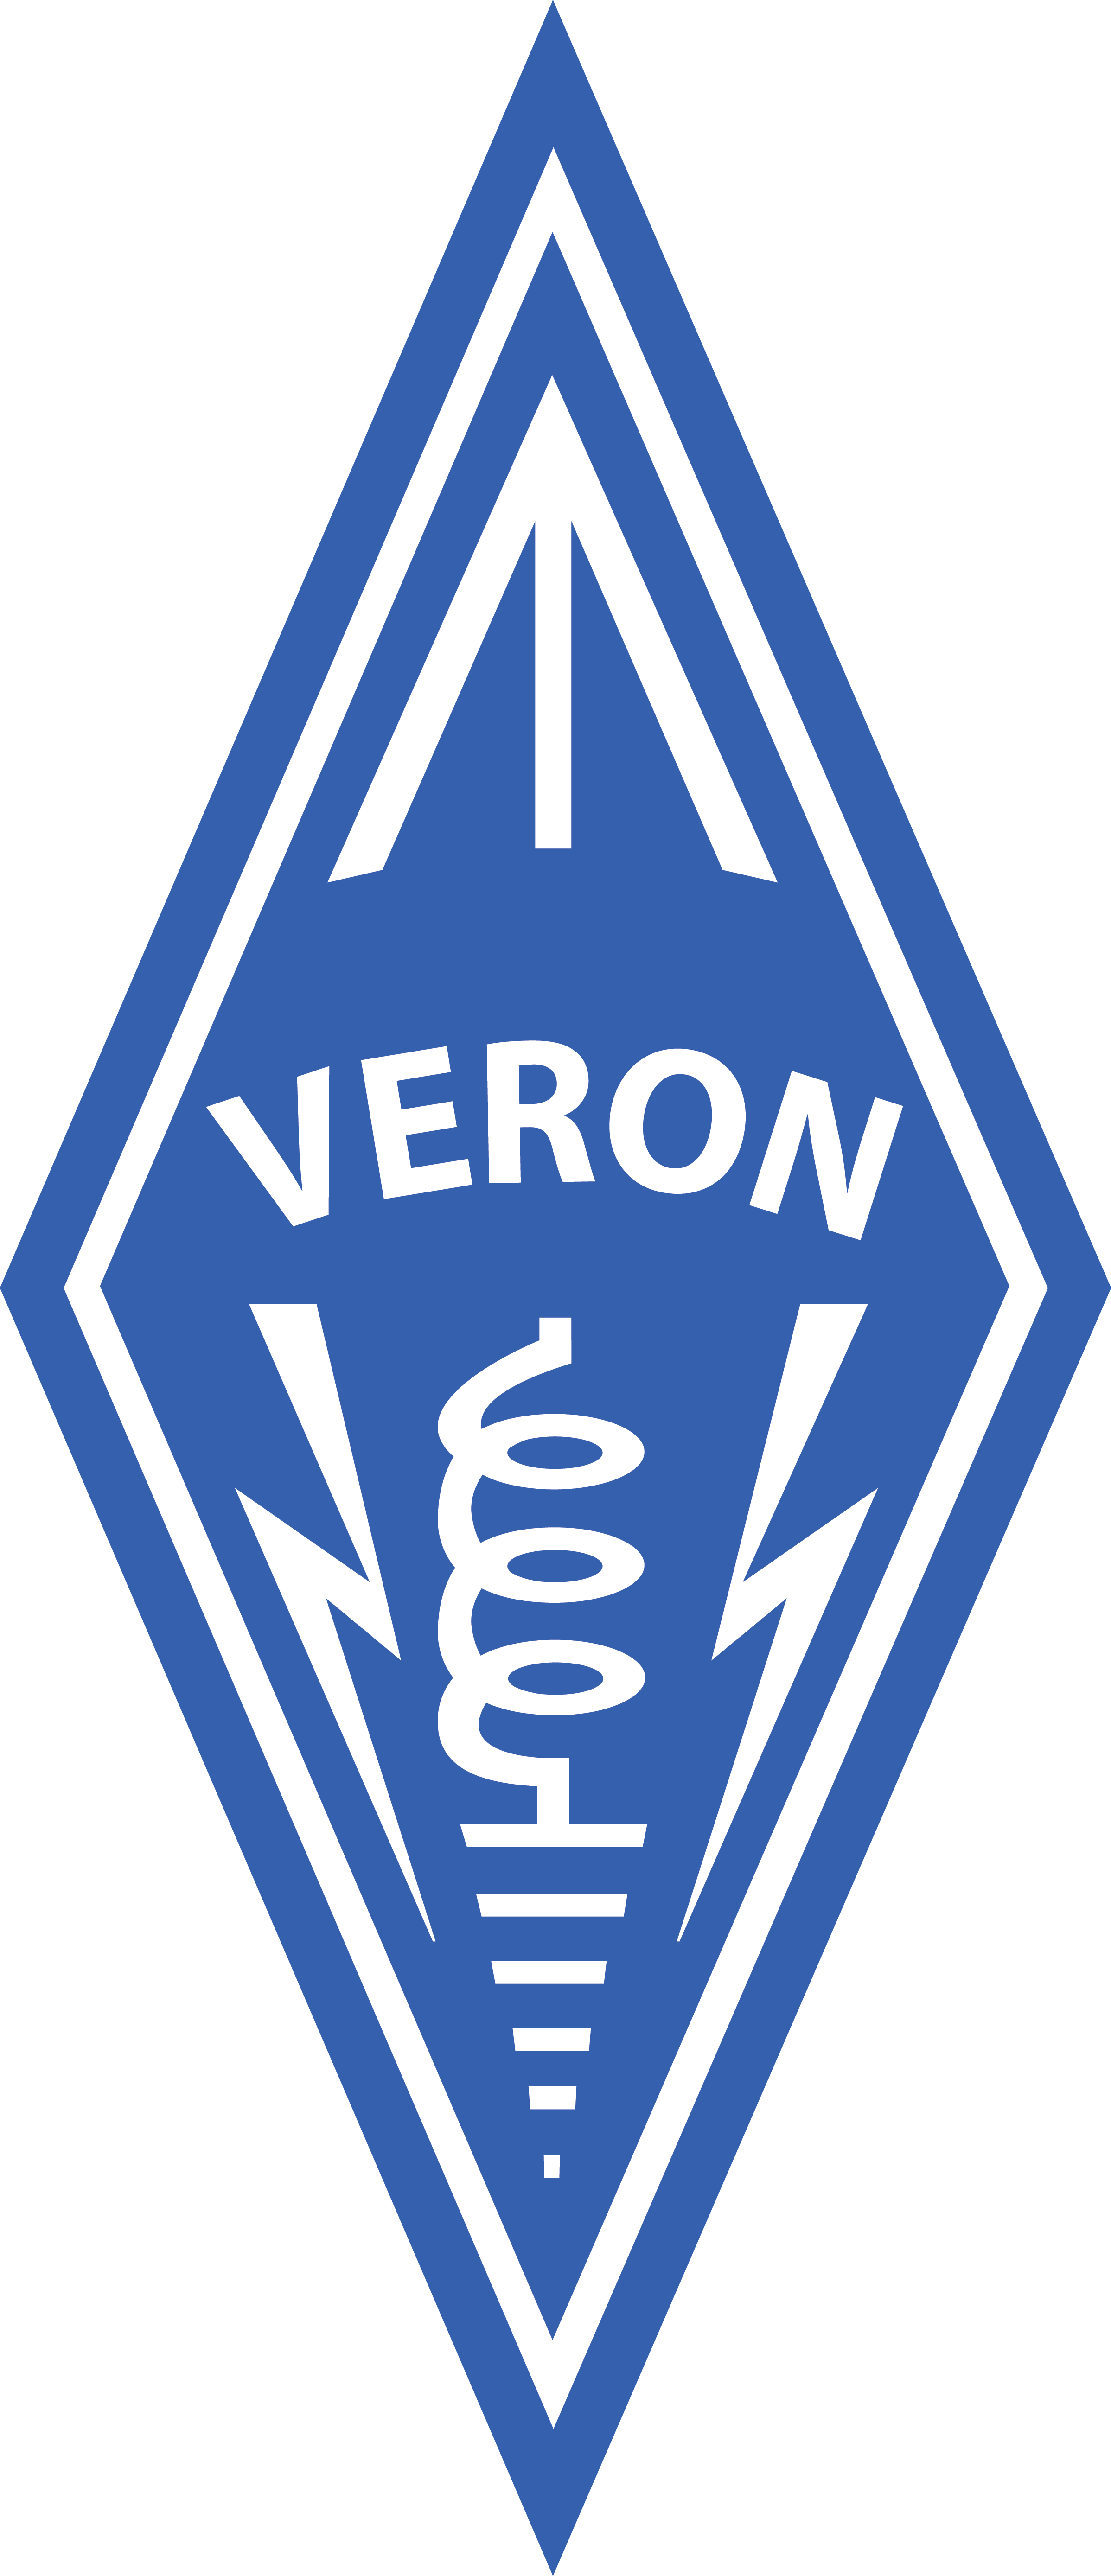 VERON website